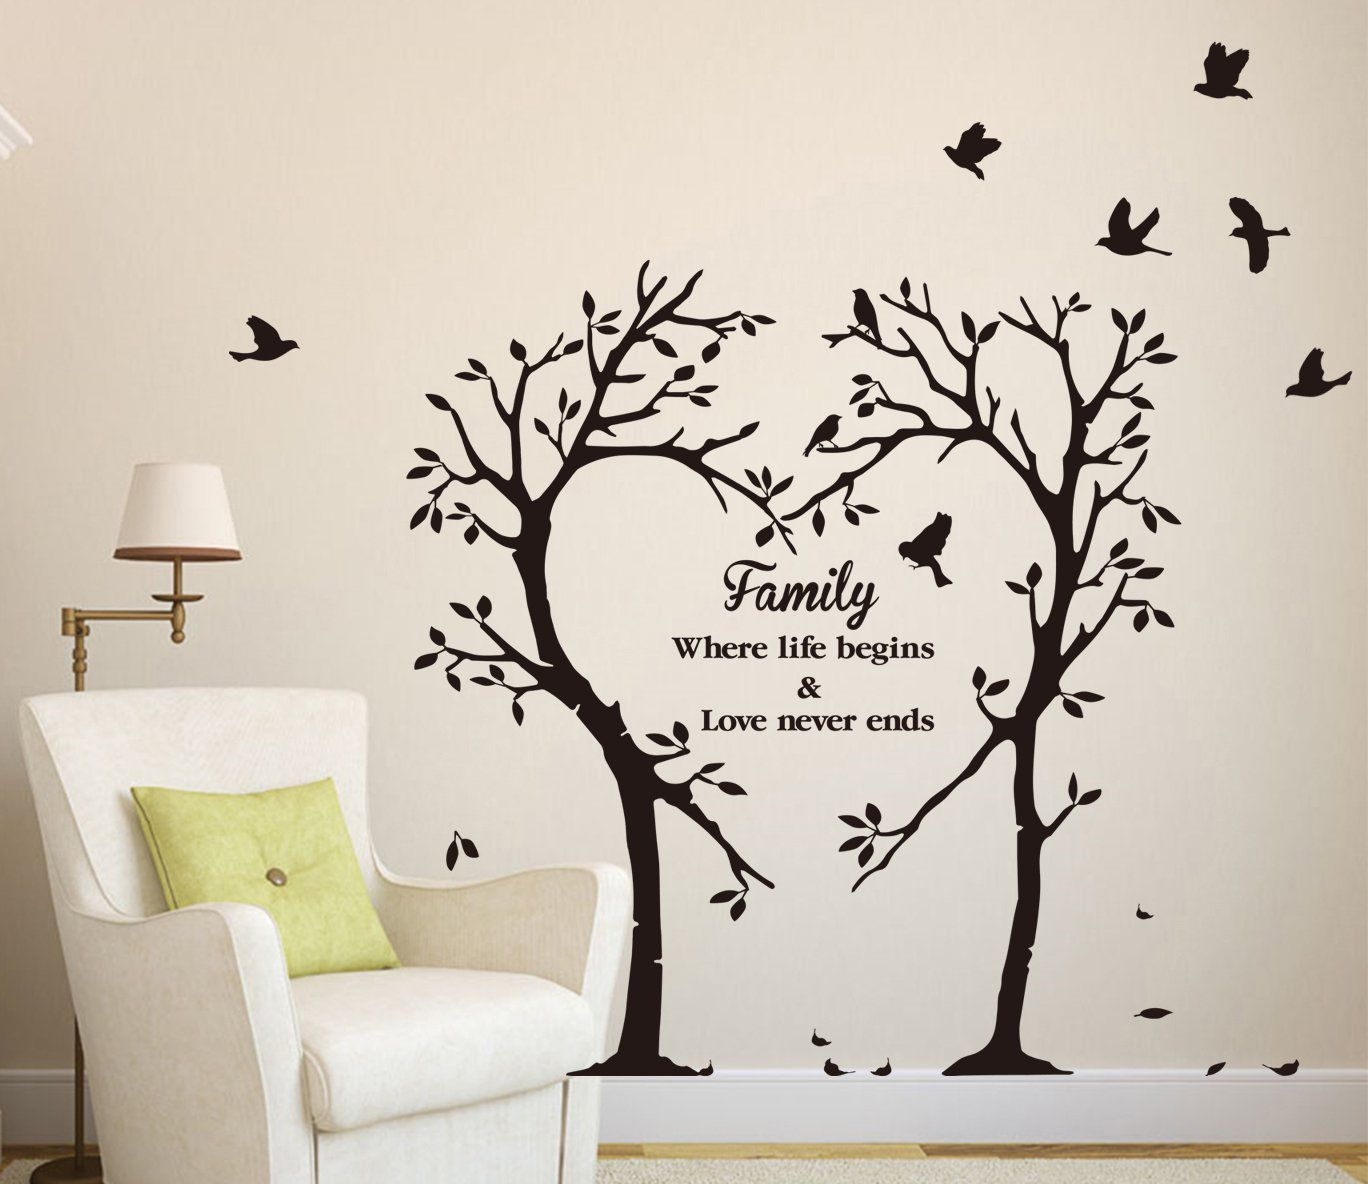 Painting walls ideas wall decals - Funny Family Tree Wall Decals To Add Beauty Of Your Room Fabulous Family Love Tree